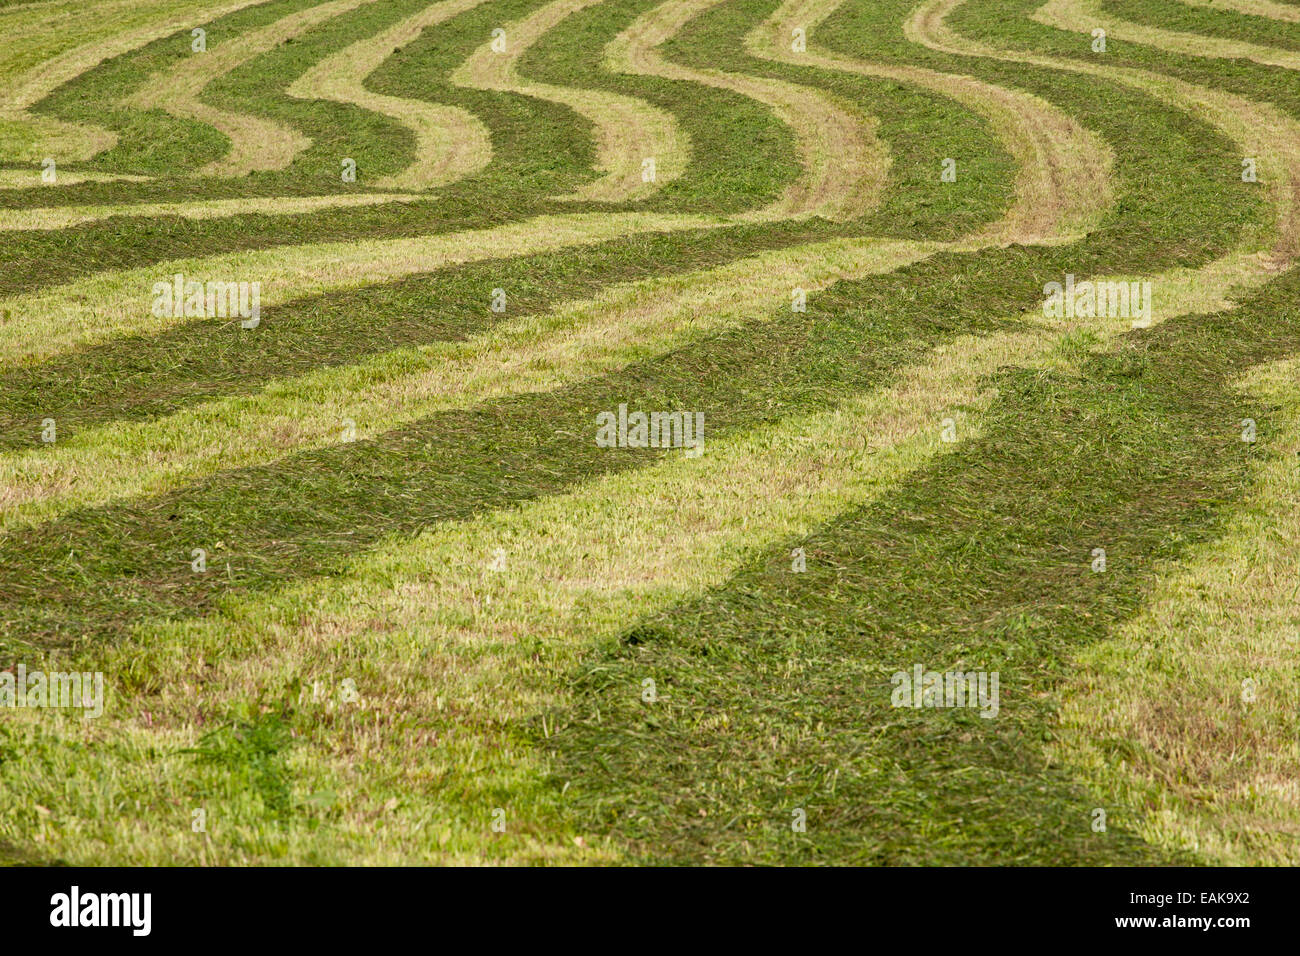 Hayfield raked in geometric patterns, Compton, Eastern Townships, Quebec Province, Canada - Stock Image